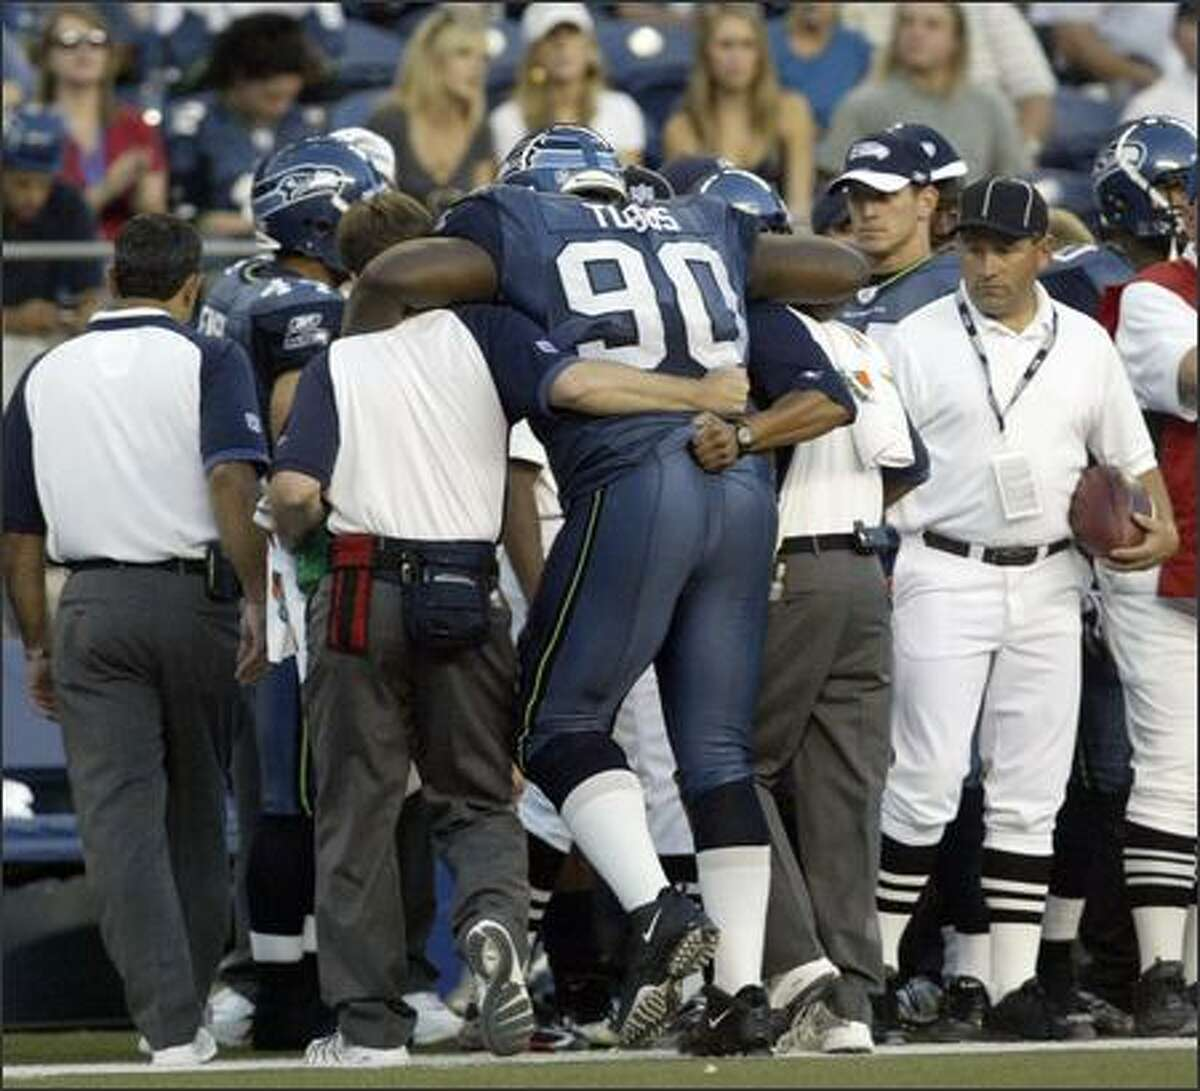 Marcus Tubbs - A defensive tackle out of Texas with huge potential, Tubbs was drafted by the Seahawks 23rd overall in 2004. Tubbs started 11 games his rookie year and 13 in his sophomore season, recording a respectable 53 tackles and 6.5 sacks. But after micro-fracture surgery to his knee caused him to miss 11 games in 2006, Tubbs was placed on injured reserve before the 2007 season ever began. A year later he was released from the team.